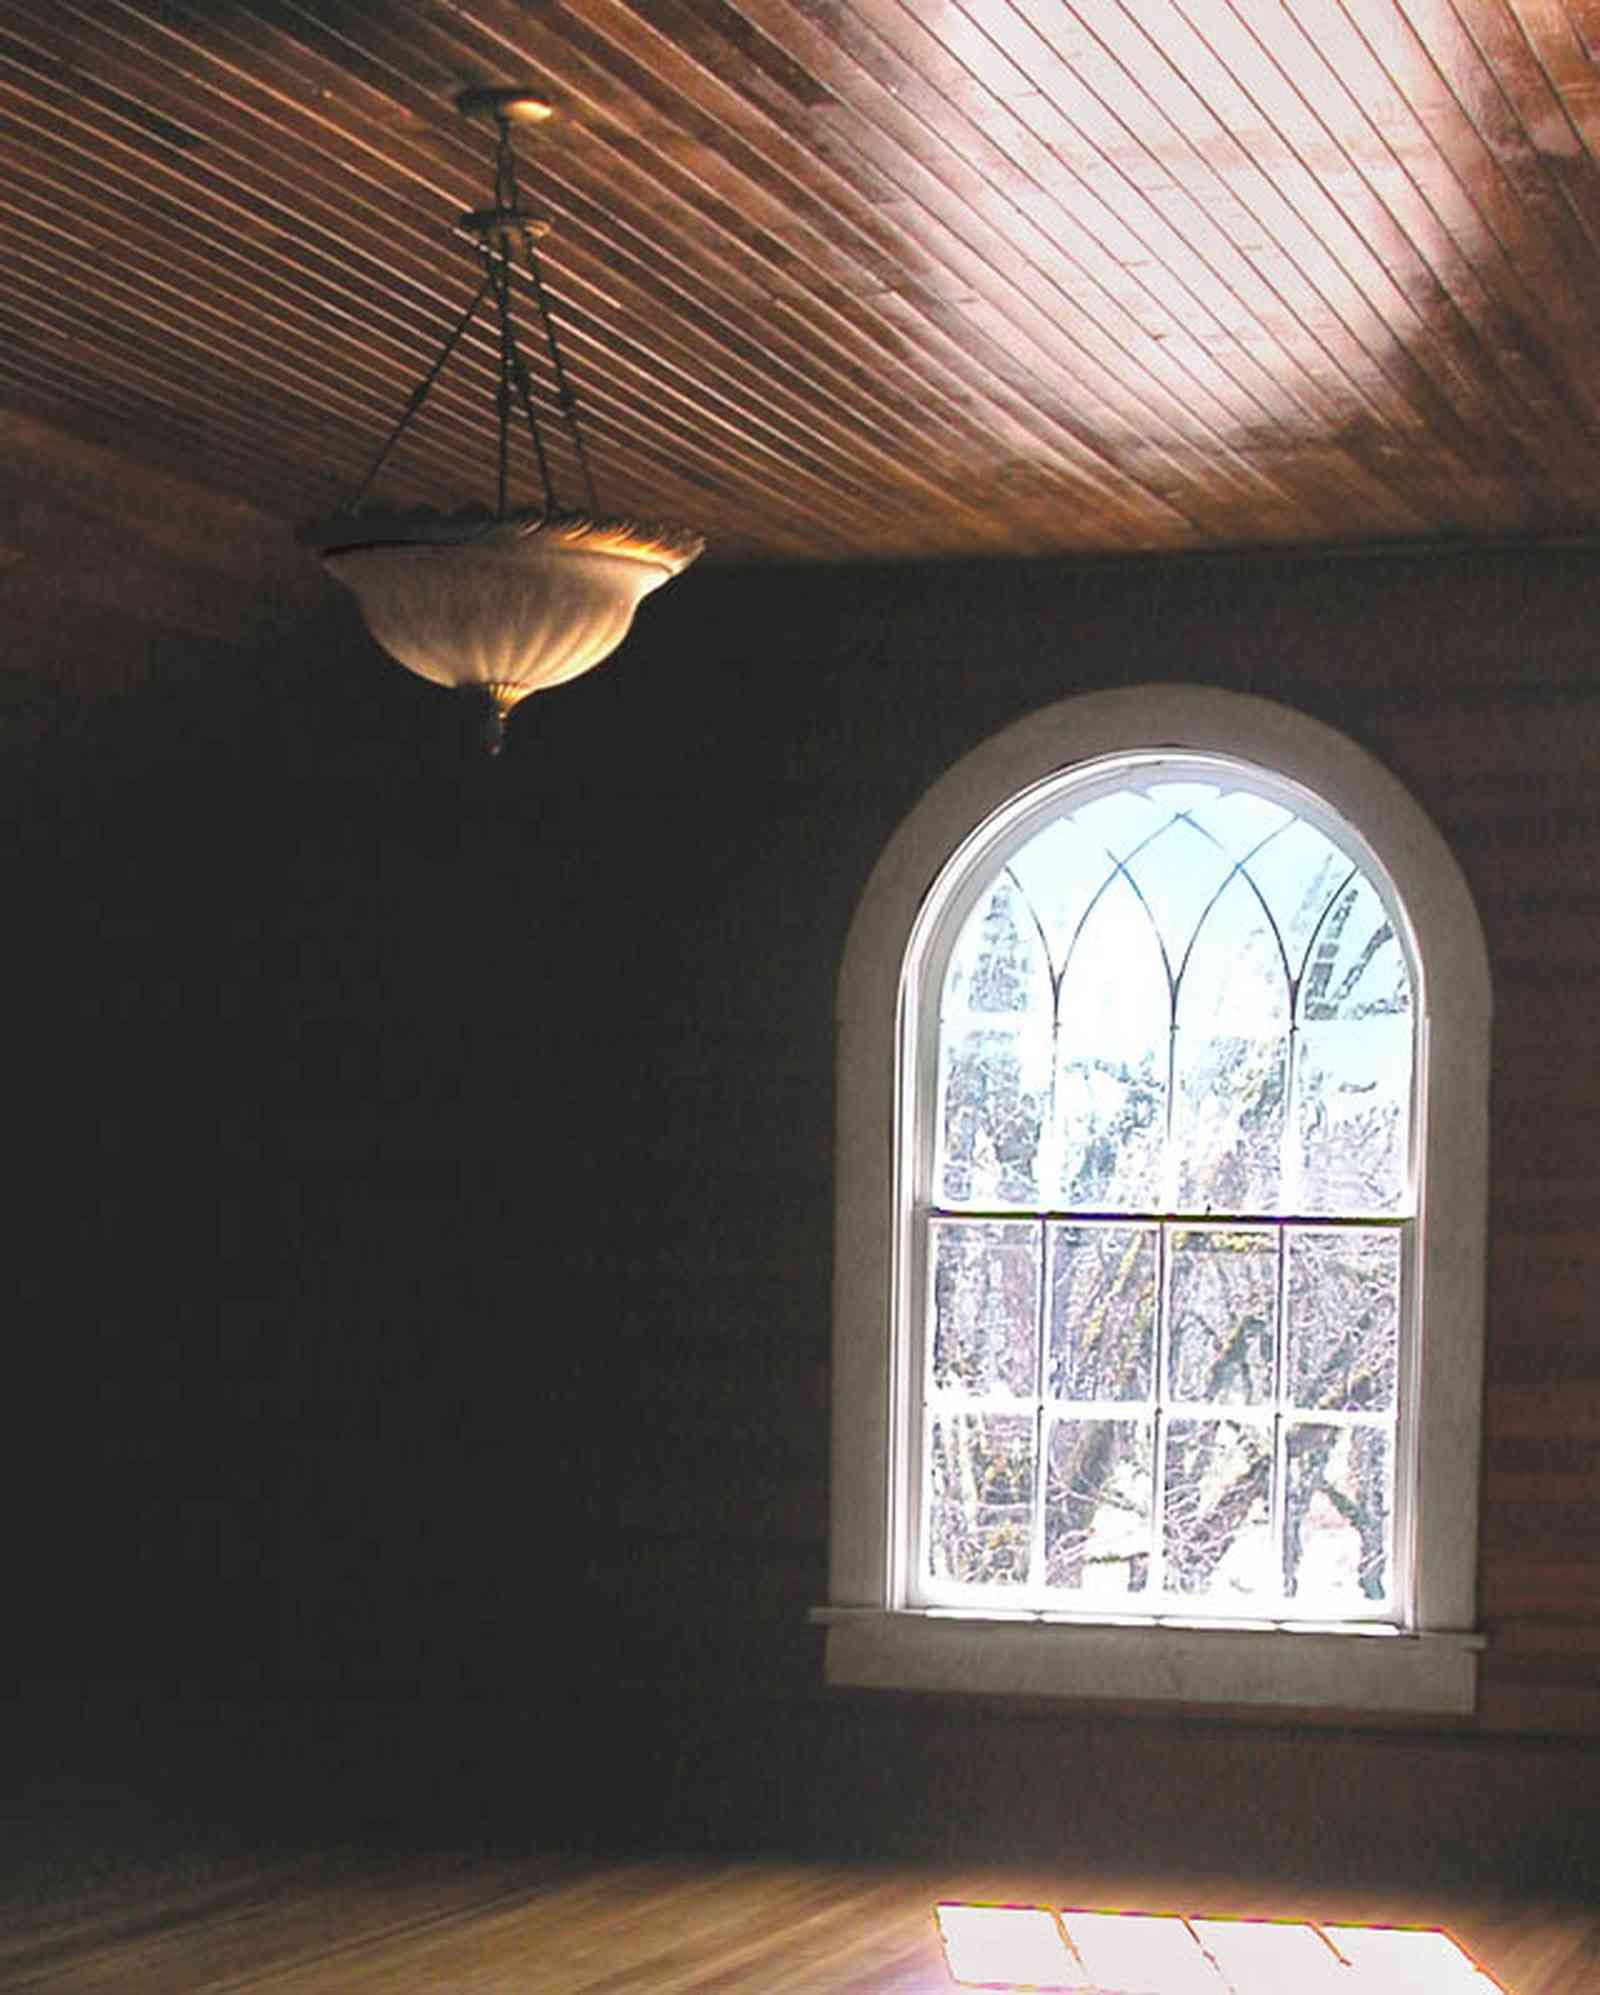 Century:-Tannenheim_01v.jpg:  leaded glass window, ballroom, wood floor, wood walls, wooden ceiling, heart pine lumber